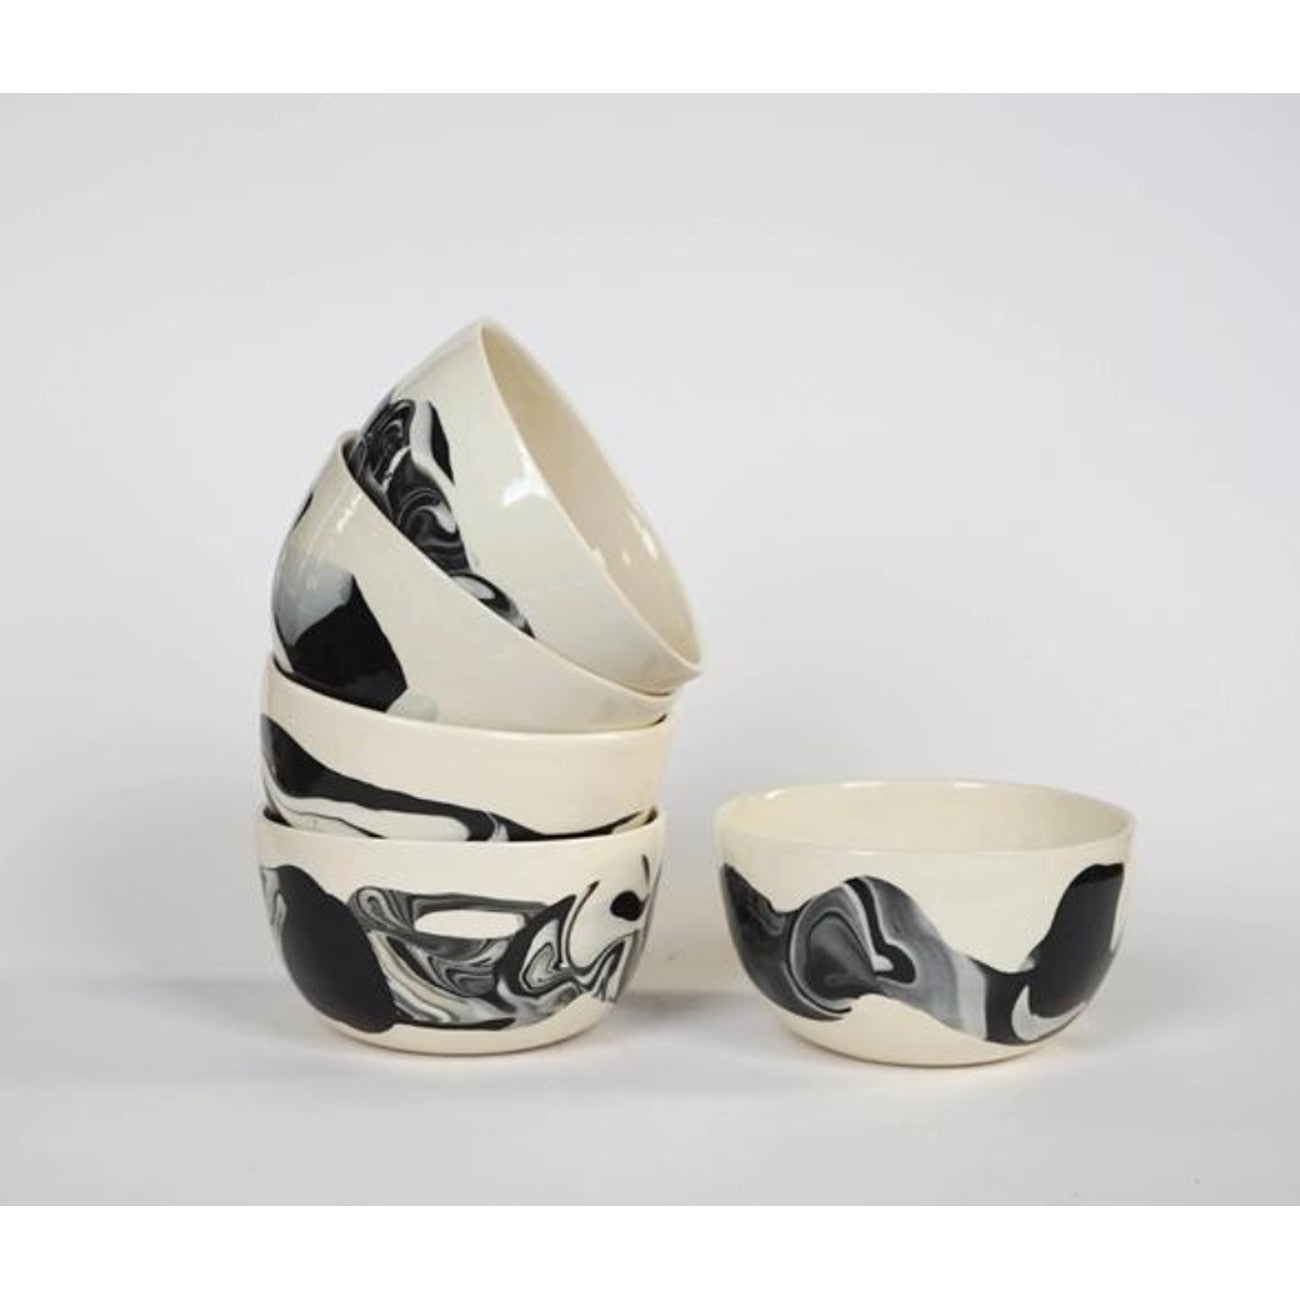 Helen Levi Breakfast Bowl: Pebble Series